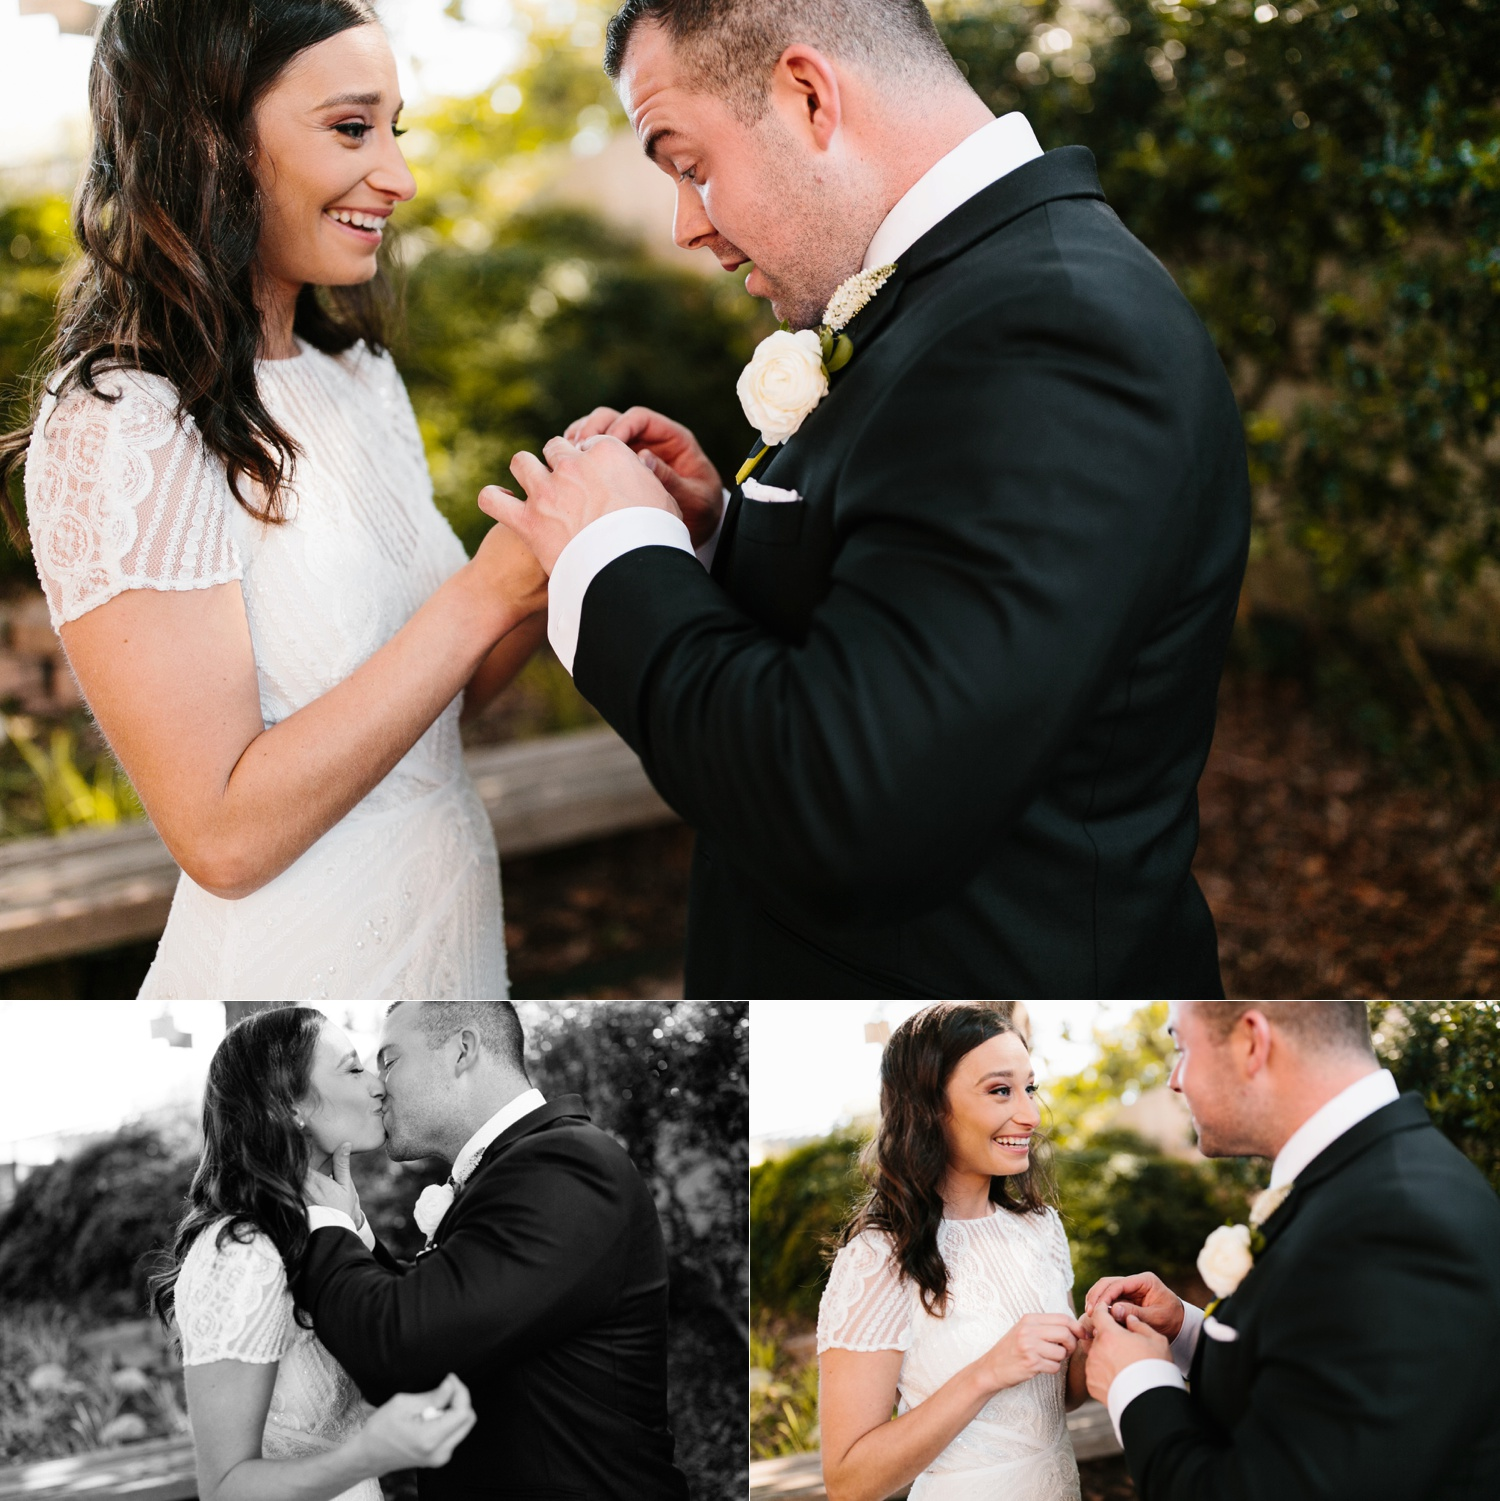 Kadee + Tyler | a raw, emotional wedding at the Filter Building on White Rock Lake in Dallas, TX by North Texas Wedding Photographer, Rachel Meagan Photography 077